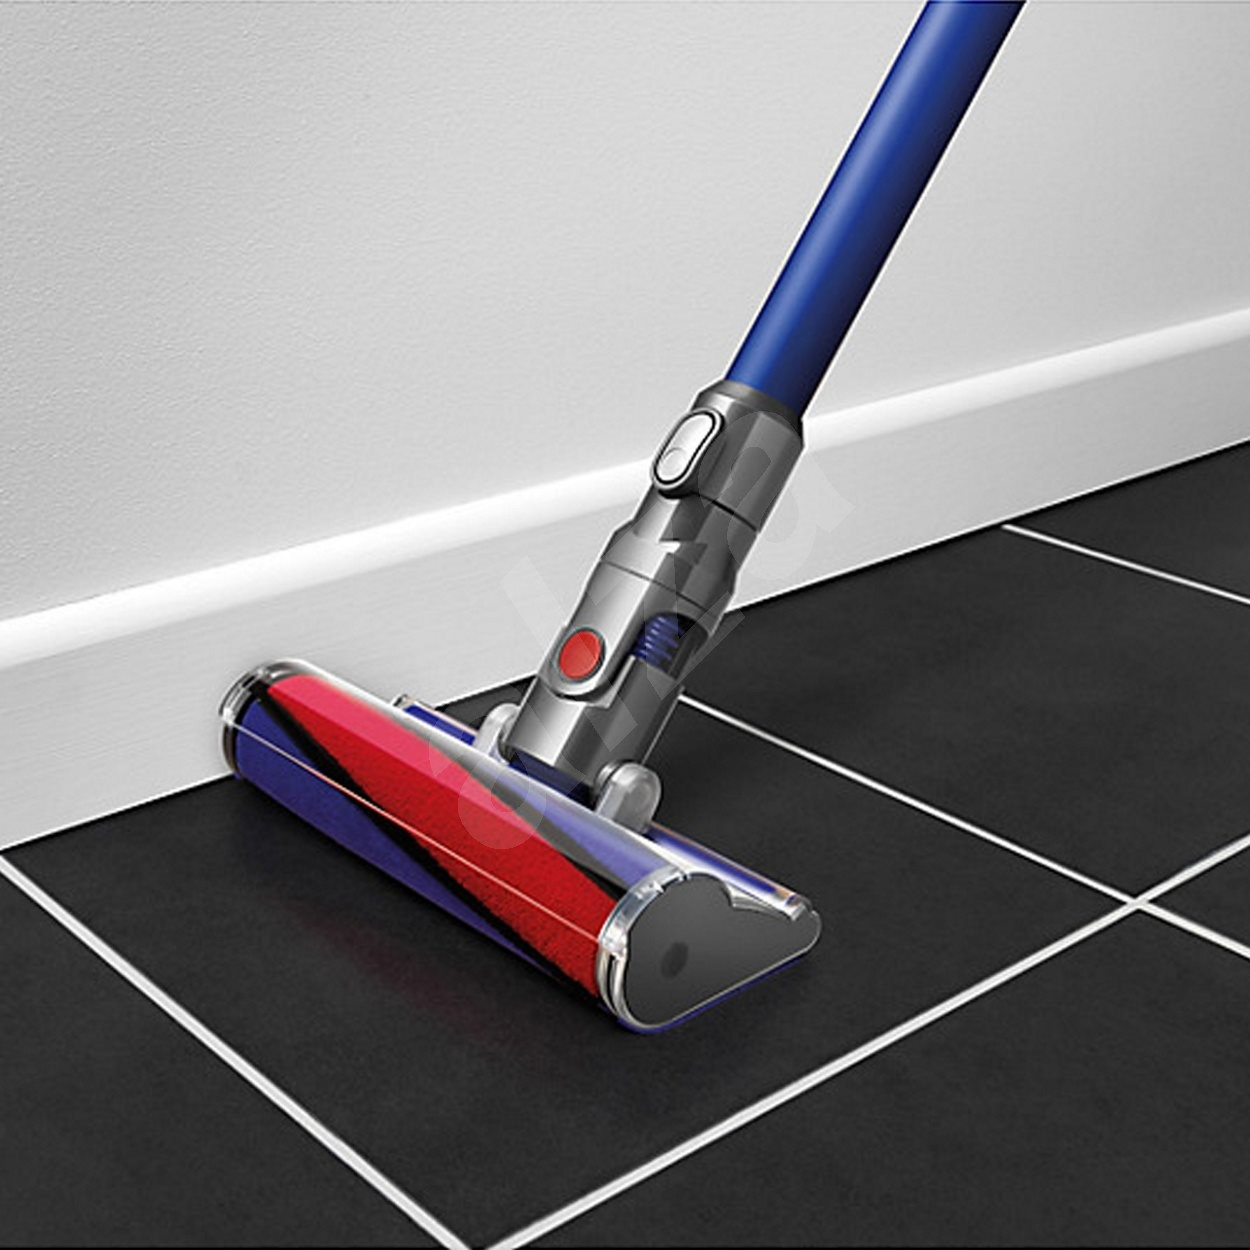 Best dyson vacuum for tile floors dyson tile floor cleaner images best vacuum for tile floors dyson v6 fluffy dailygadgetfo Image collections